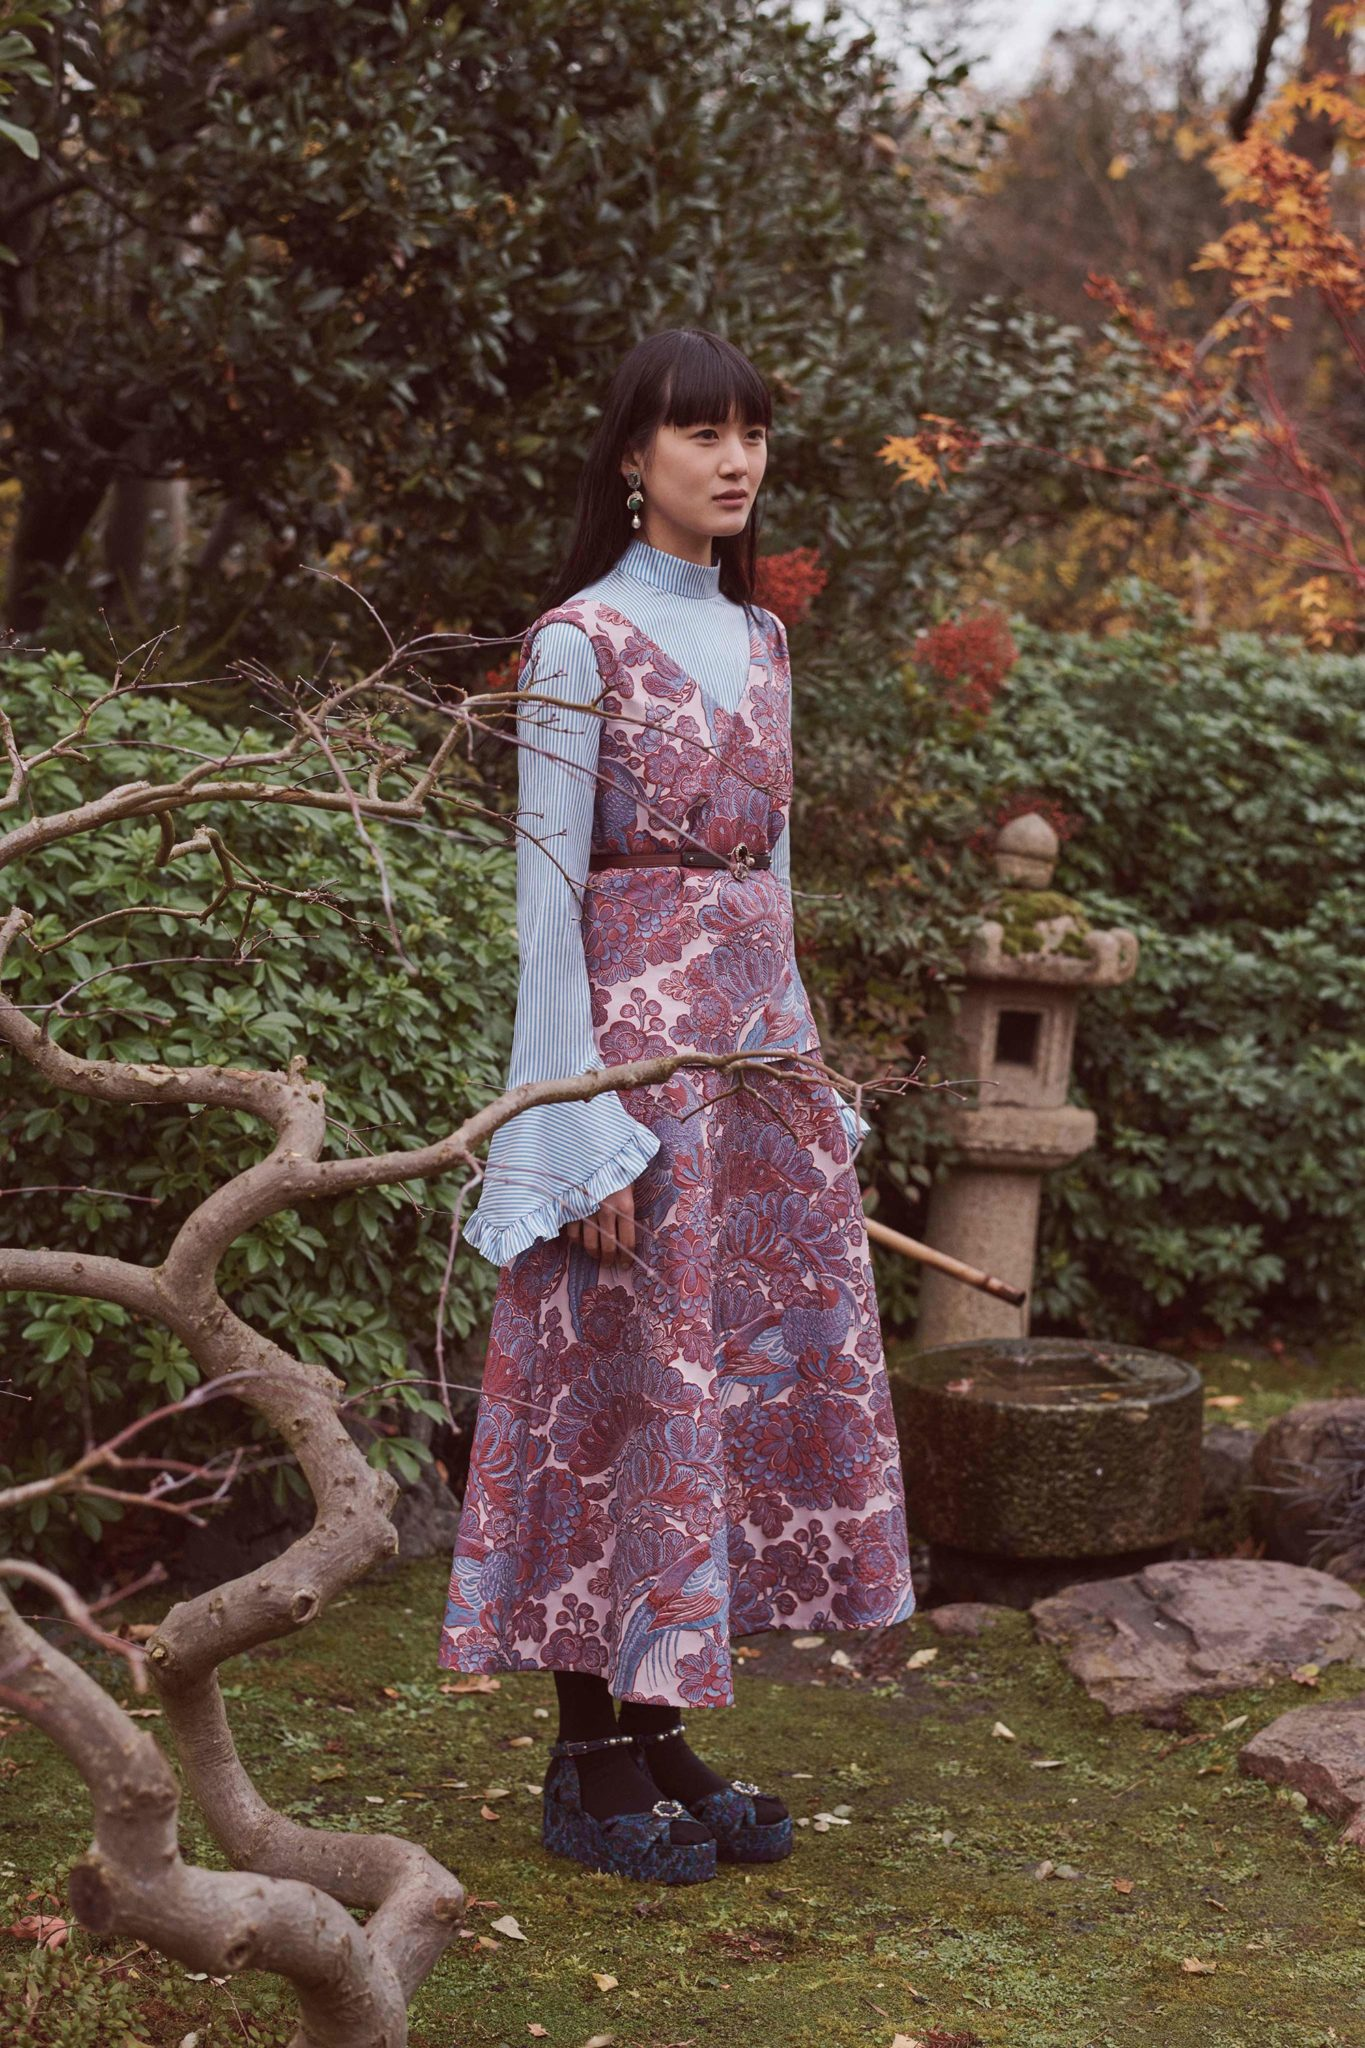 Erdem Fall Winter 2018 2019 Fashion Show: Erdem Pre-Fall 2018 Collection